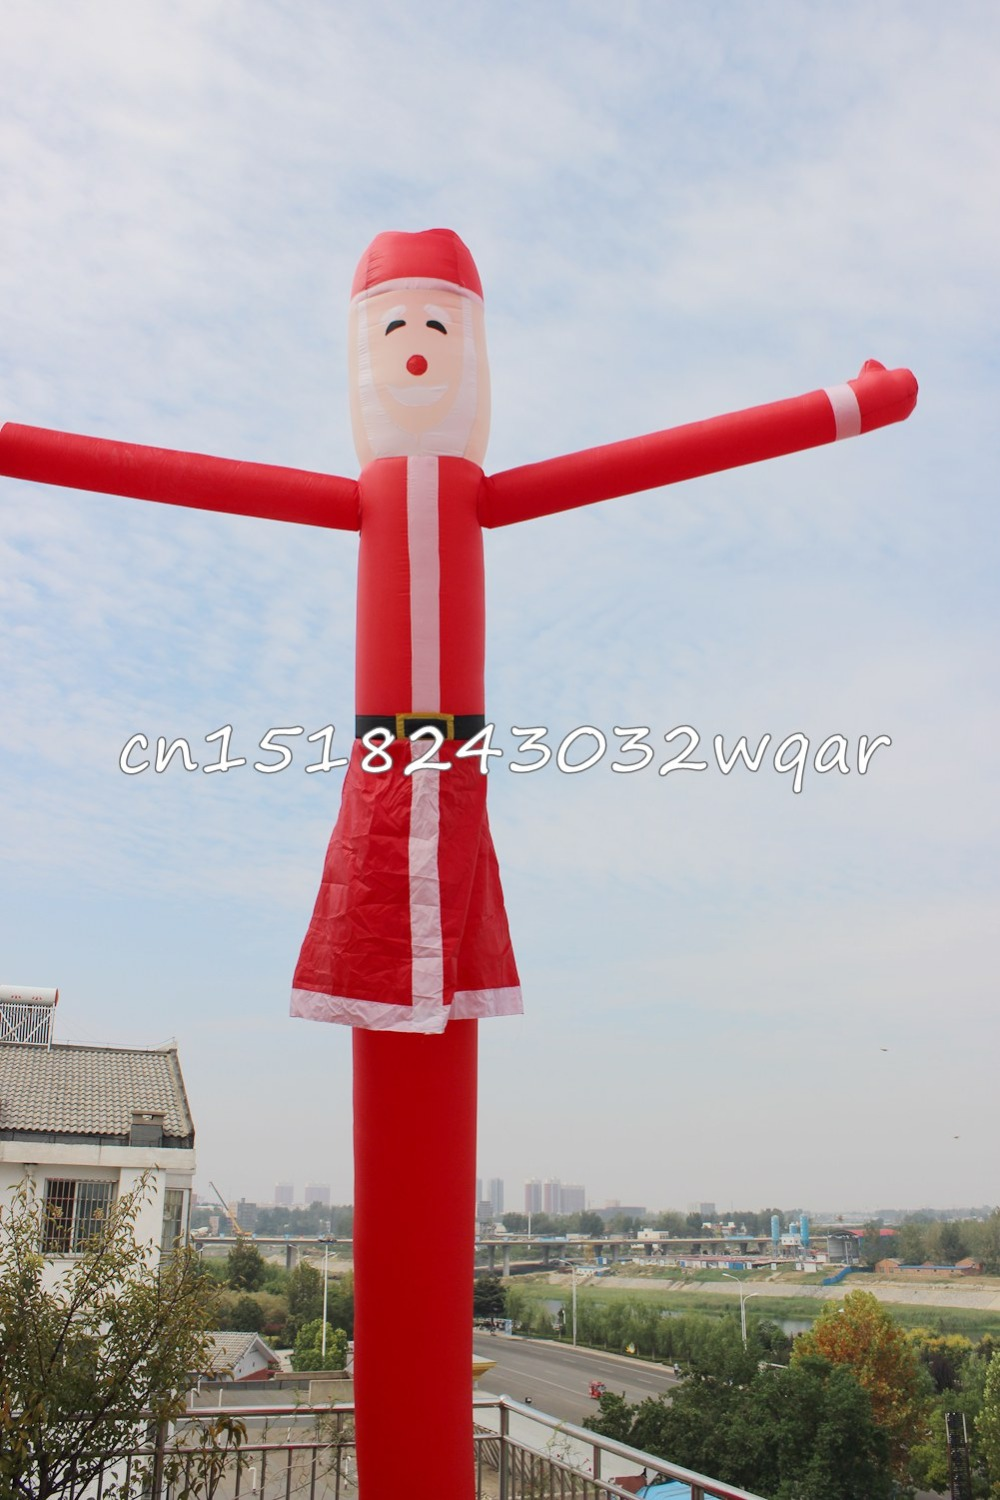 Sky Dancer Air Dancer Inflatable Toys 6M 20FT Inflatable Tube NO Blowers Inflatable Toys Shop ads sign SD-01 цена и фото